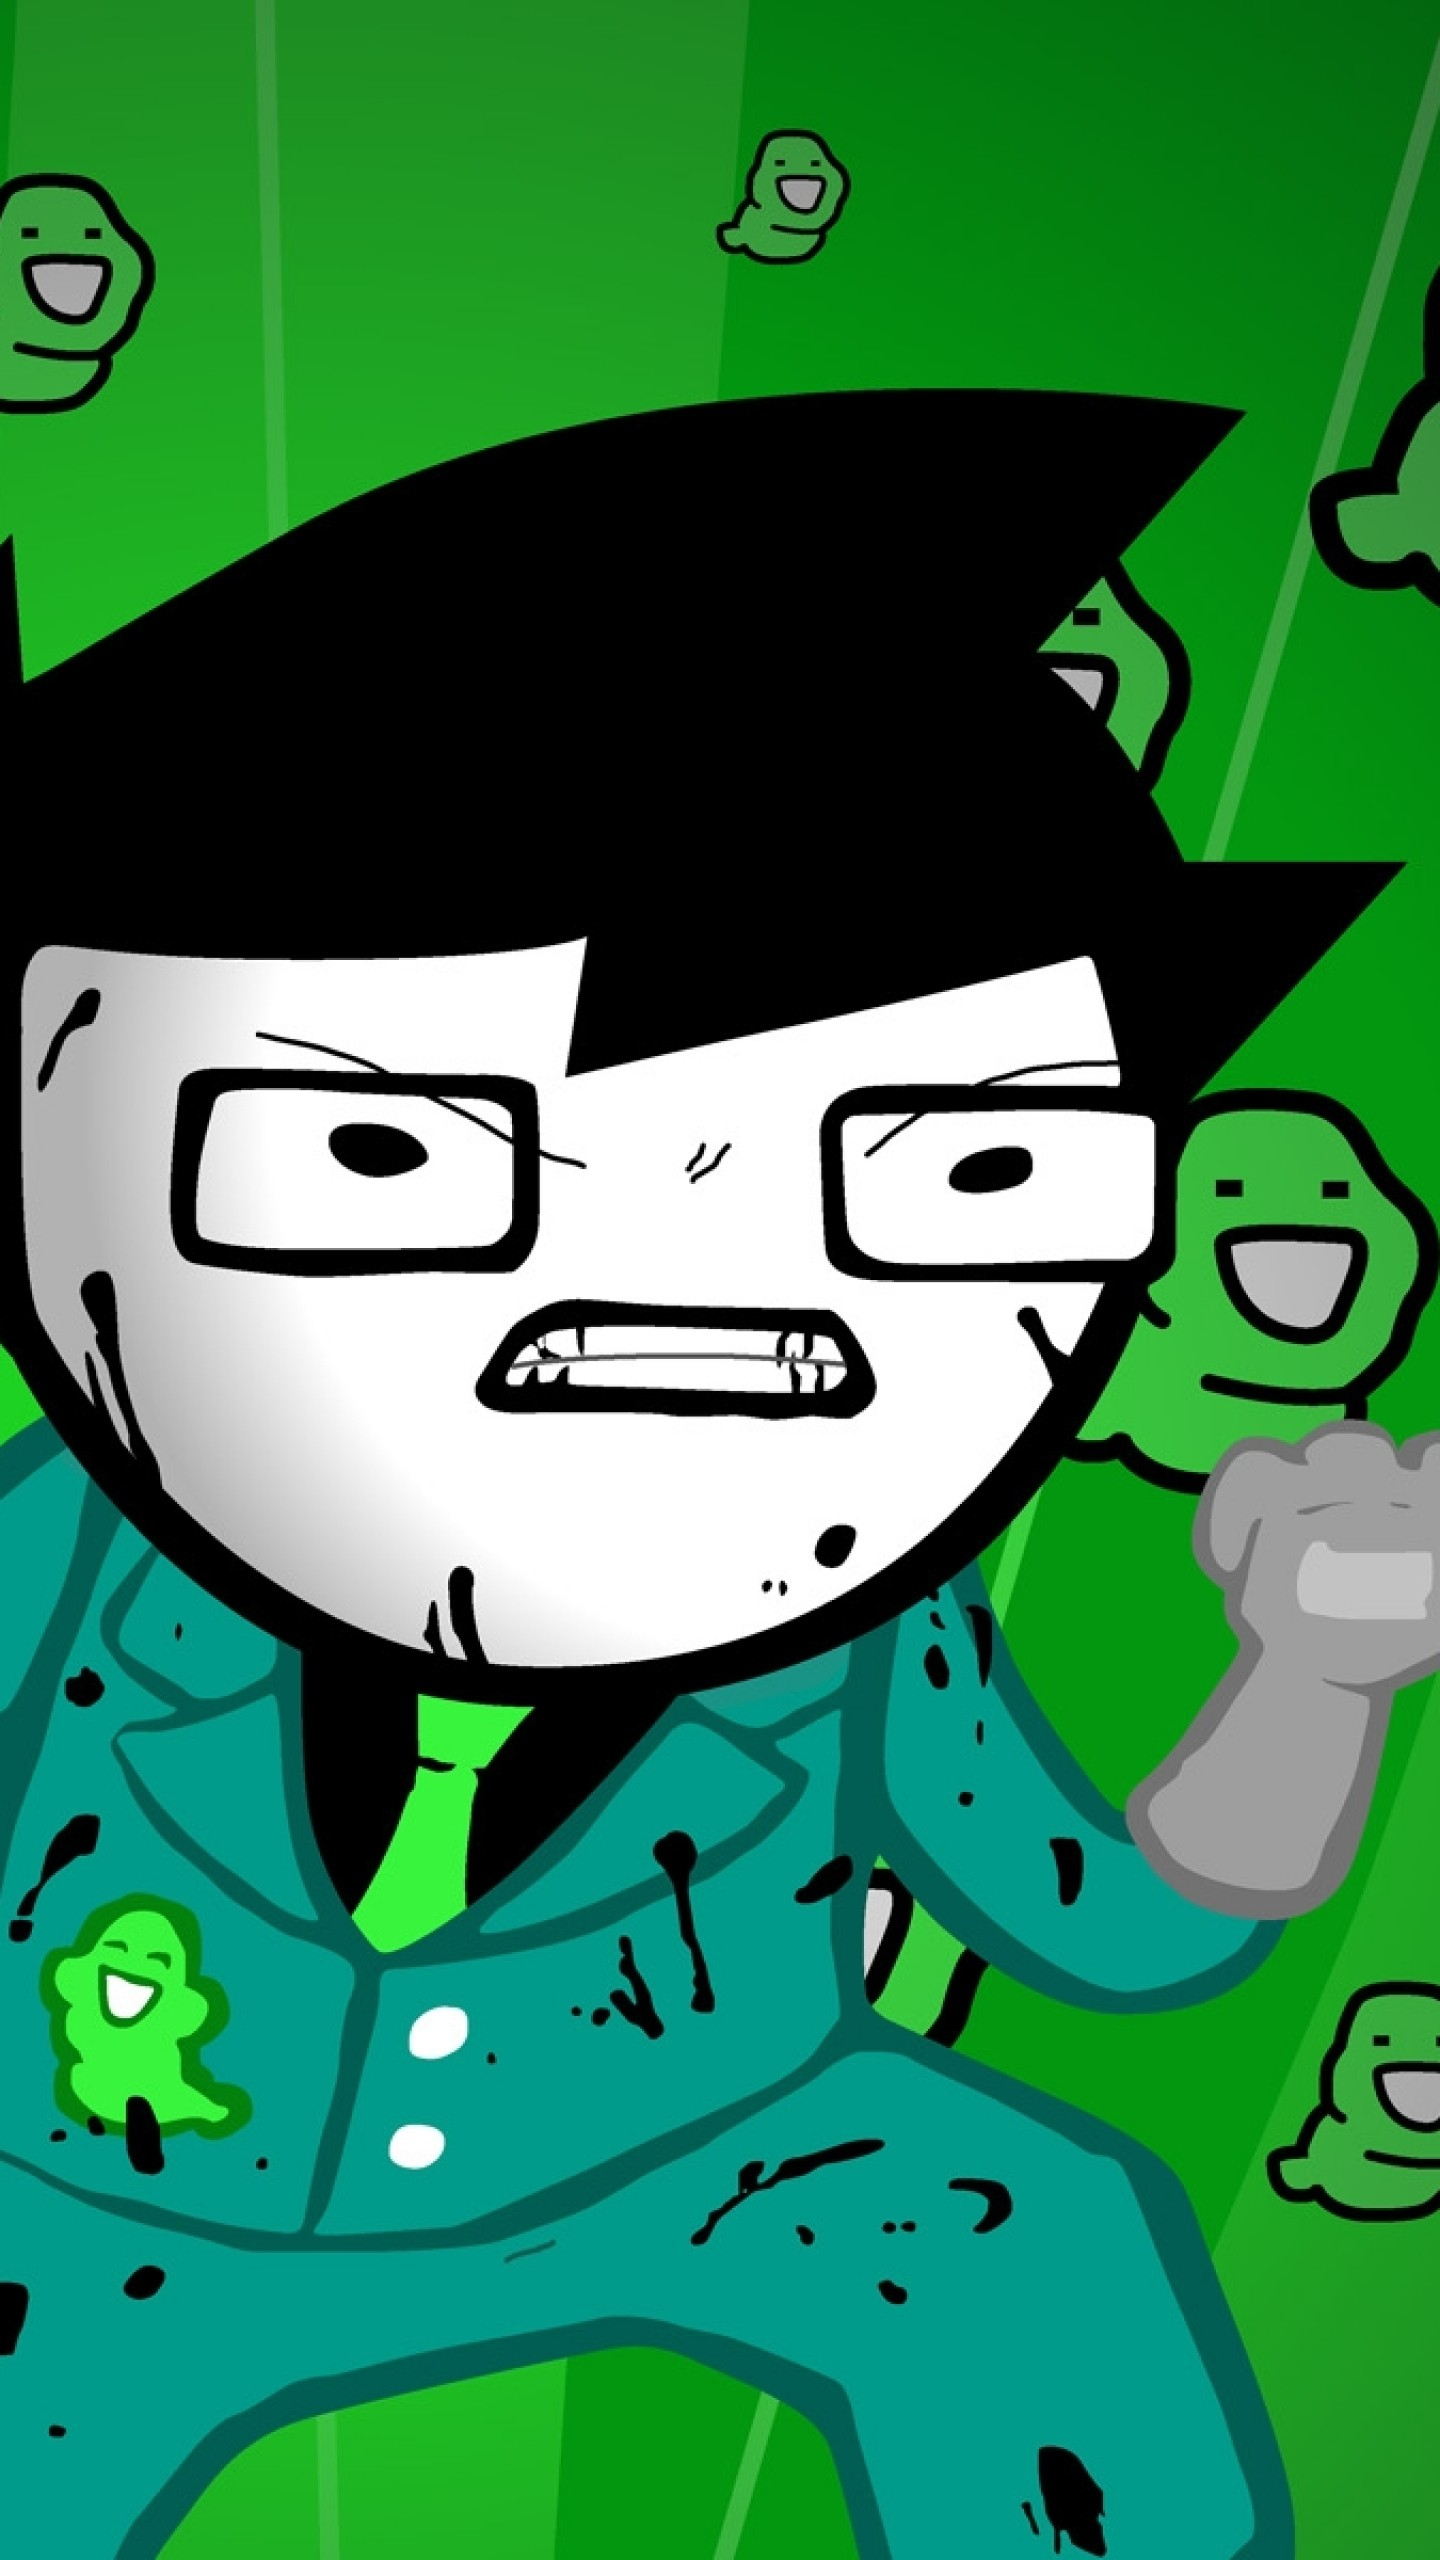 Wallpaper green, figure, aggression, style, homestuck